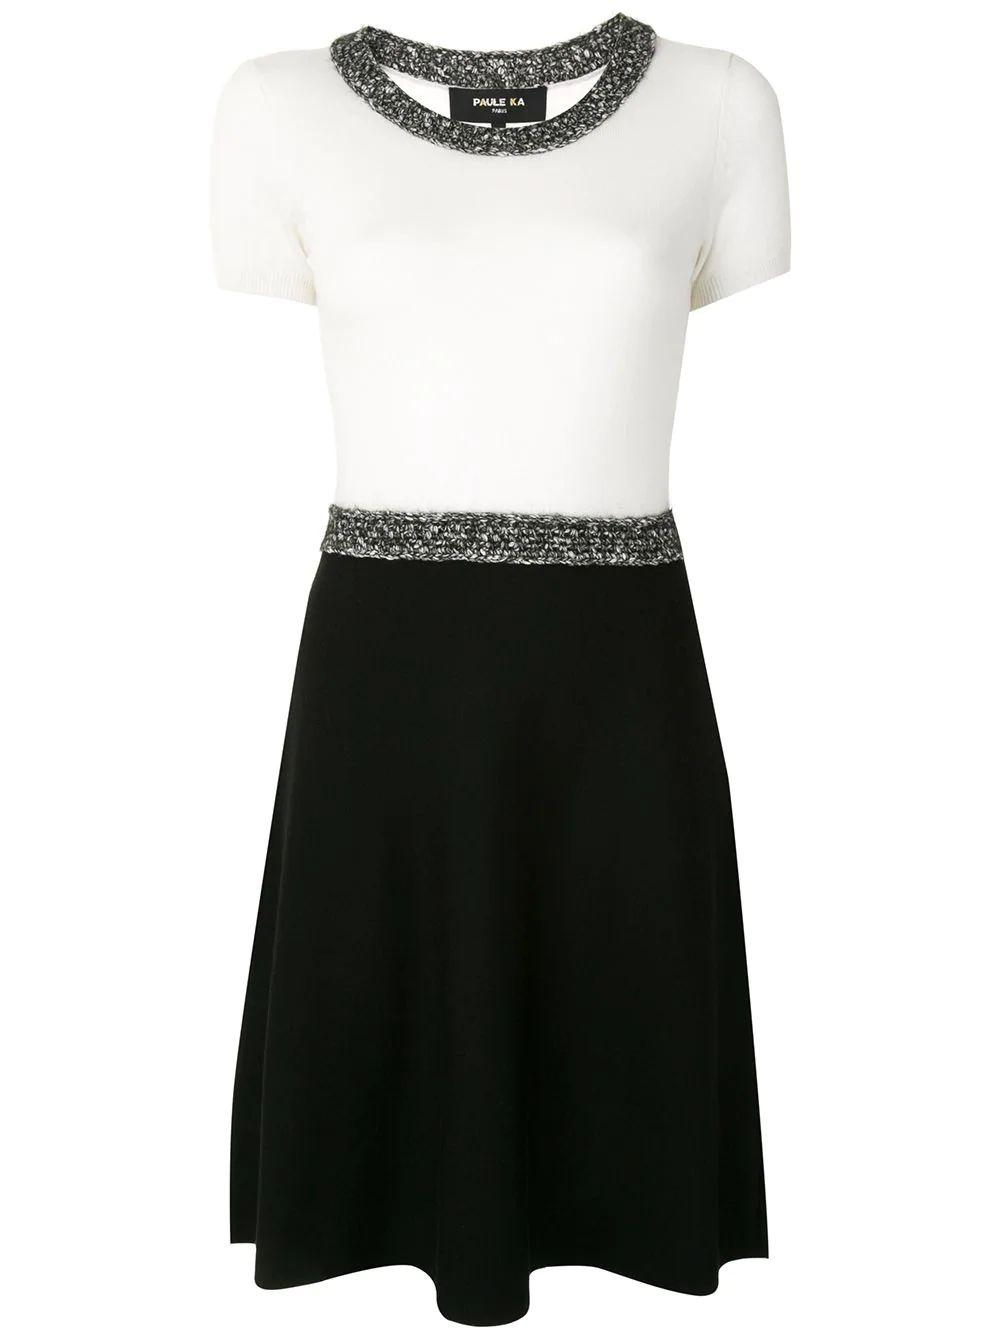 Crochet Trim Fit And Flare Dress Item # 405/RO41